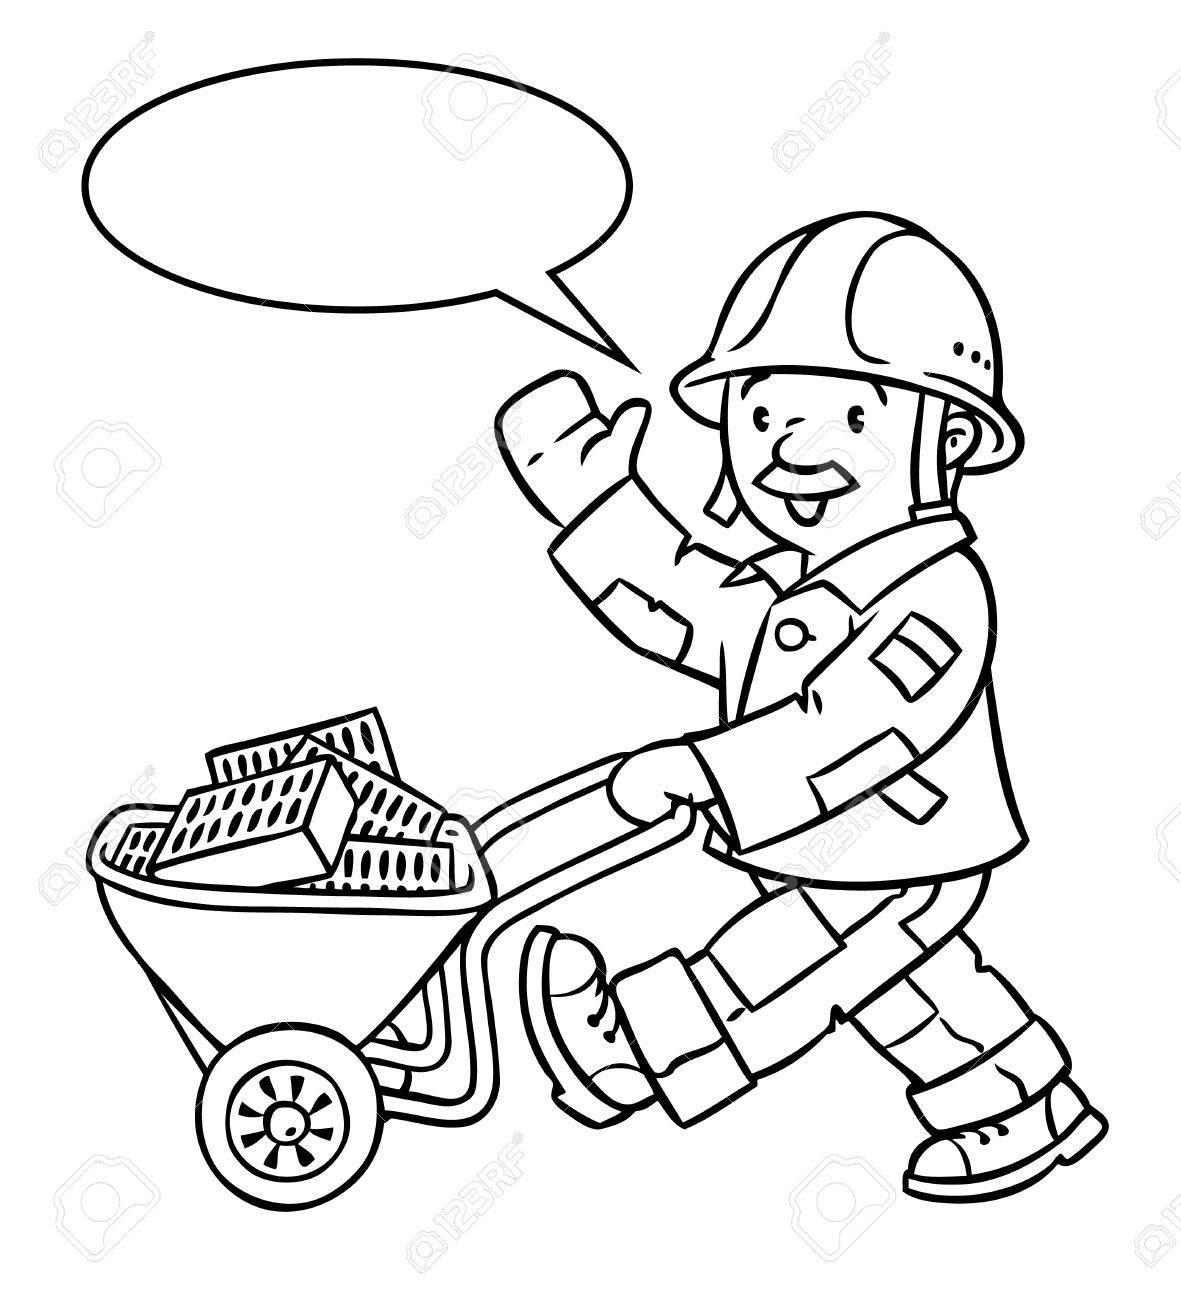 Coloring Picture Or Coloring Book Of Funny Construction Worker ...